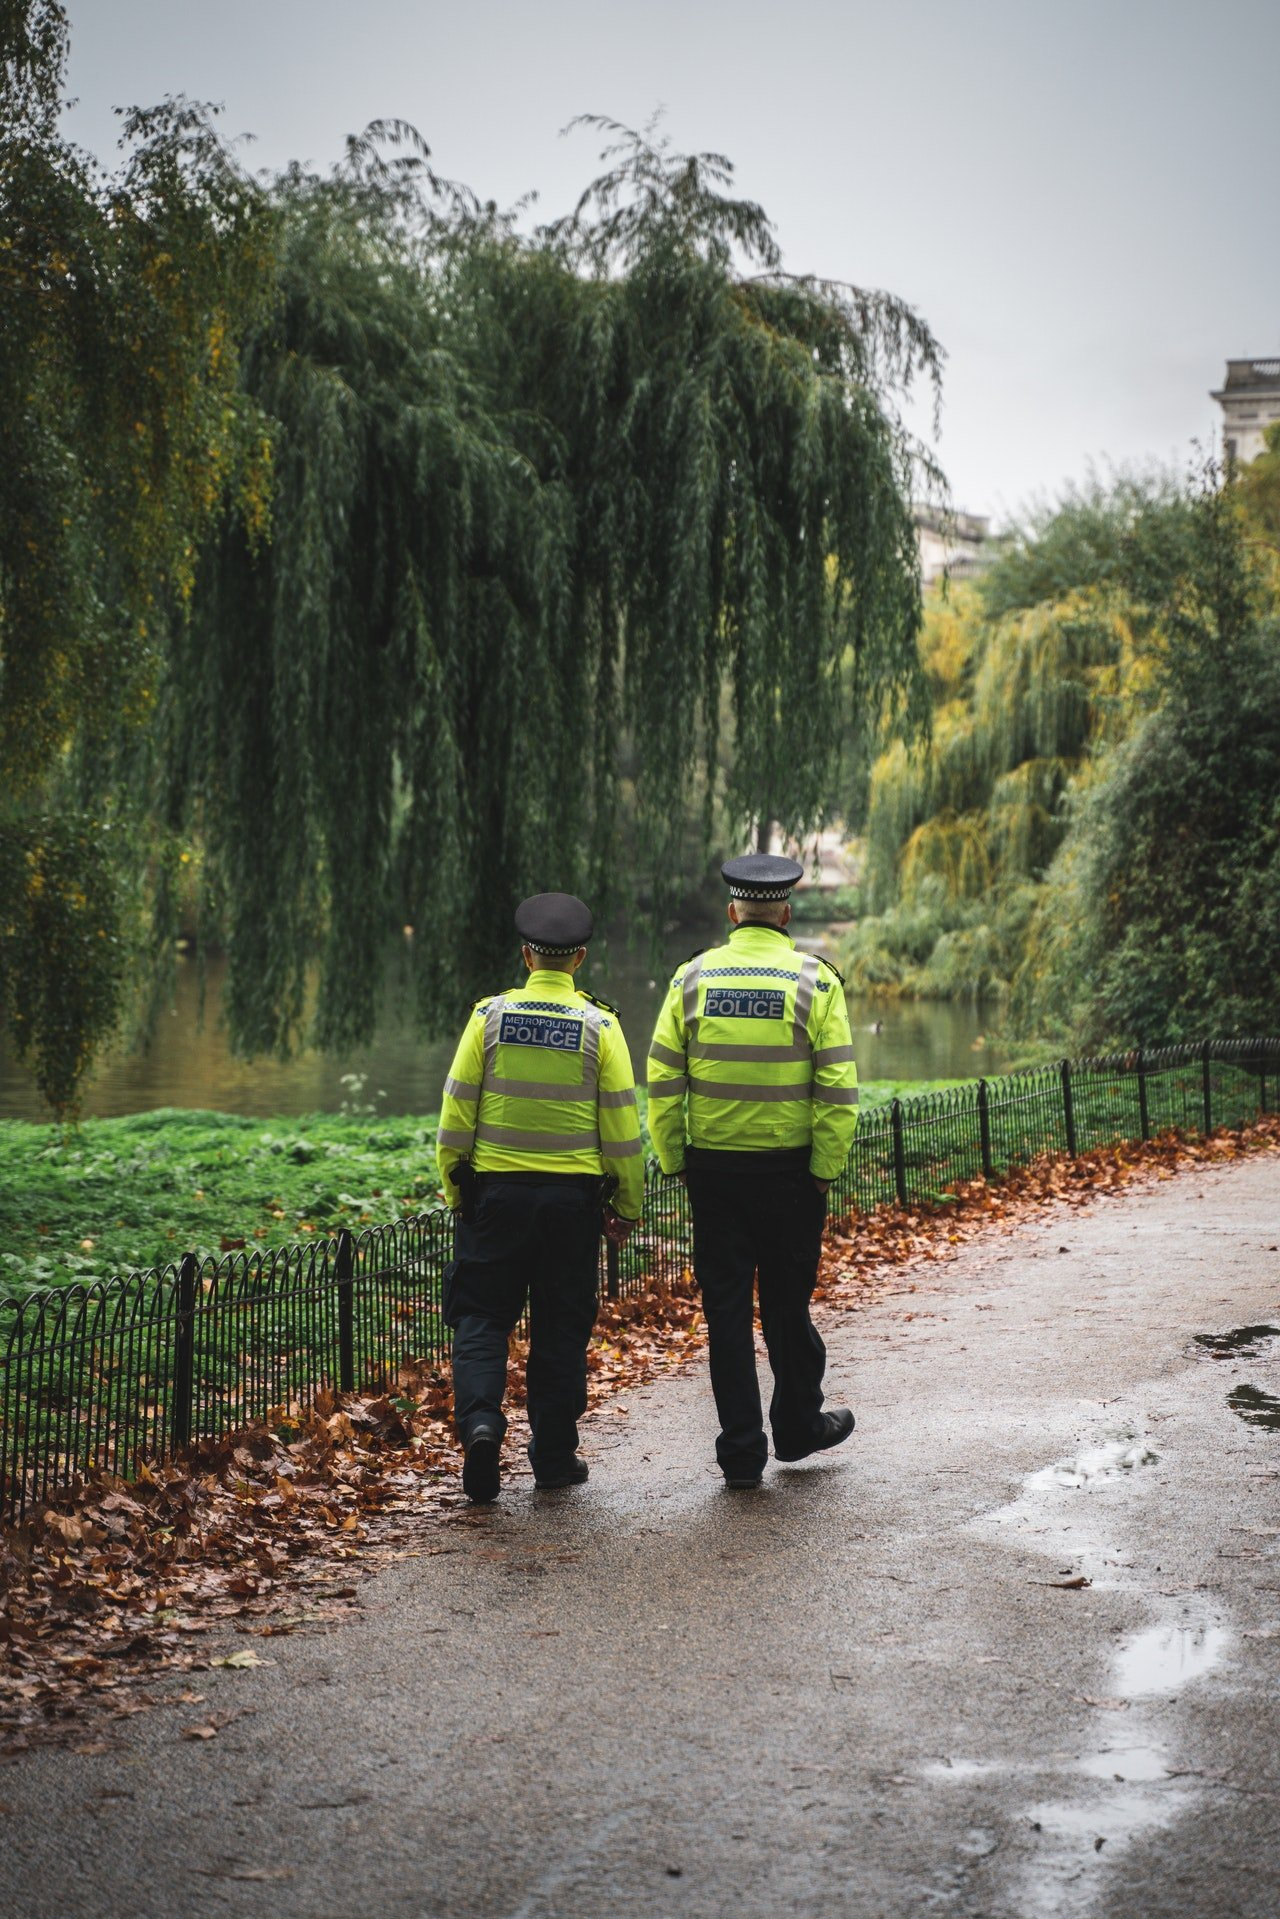 Photo of two police officers walking down the road   Photo: Pexels